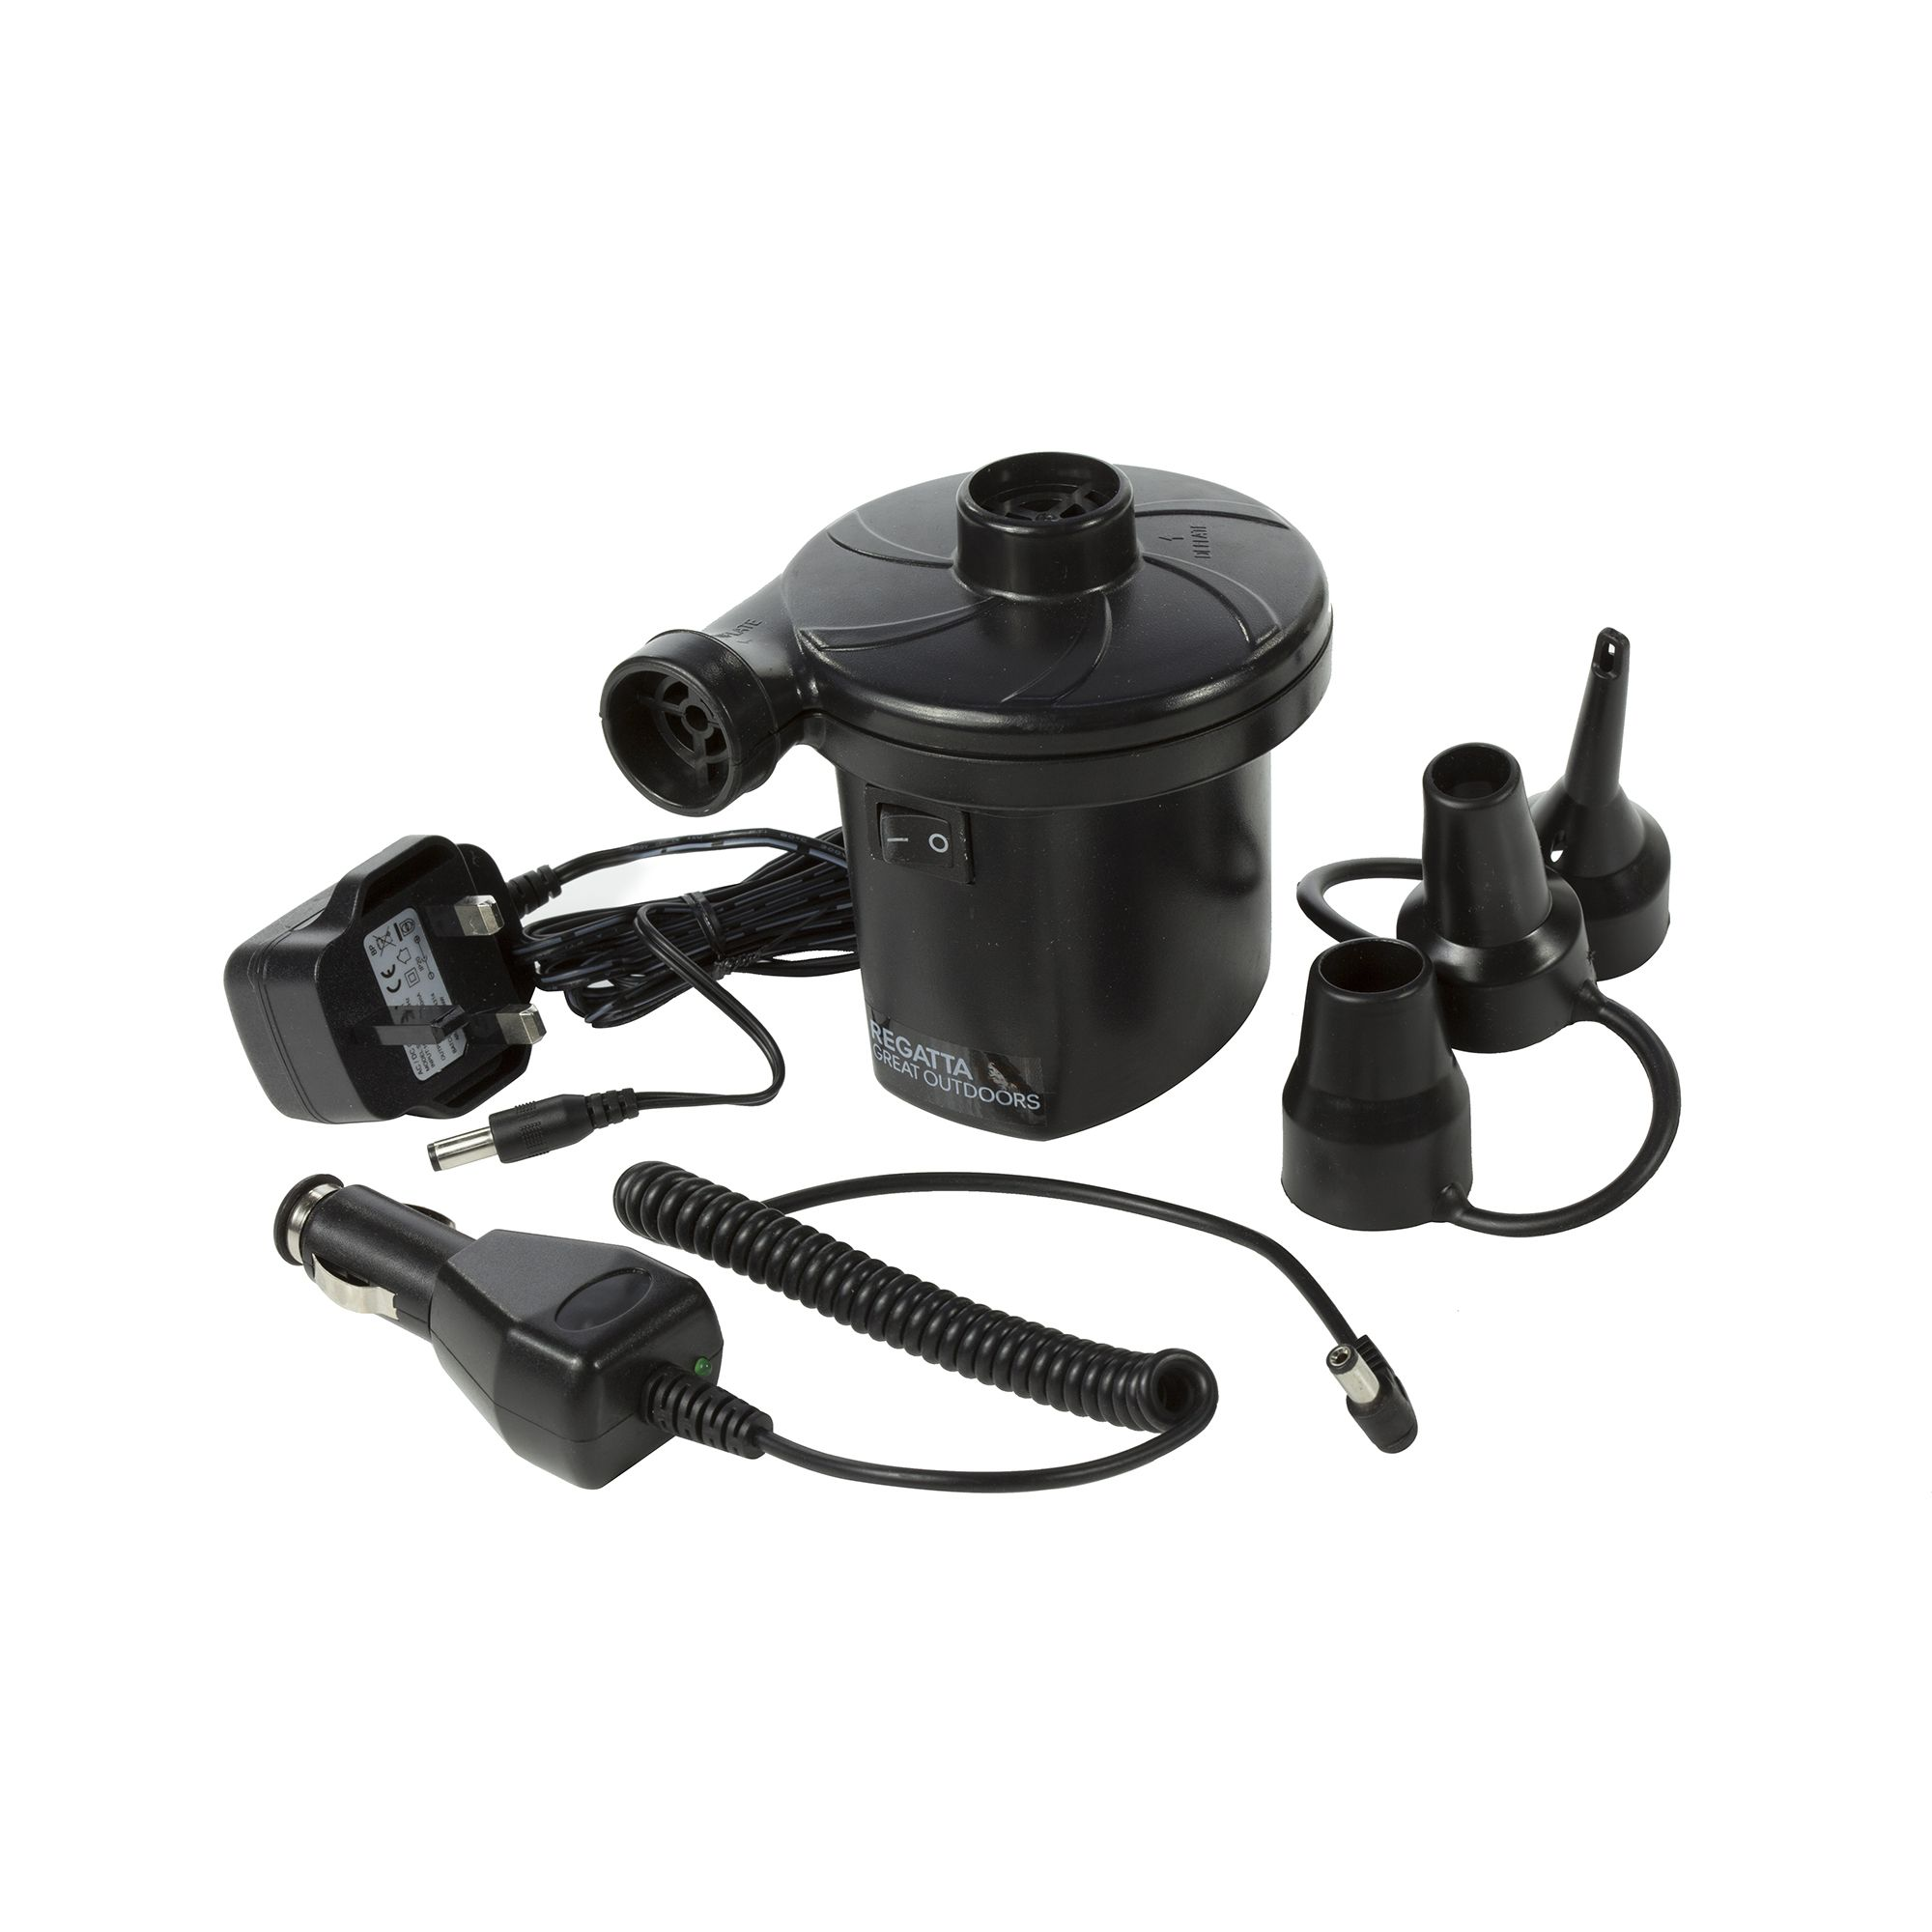 Regatta Great Outdoors Rechargeable Electric Camping Pump (UK Plug)